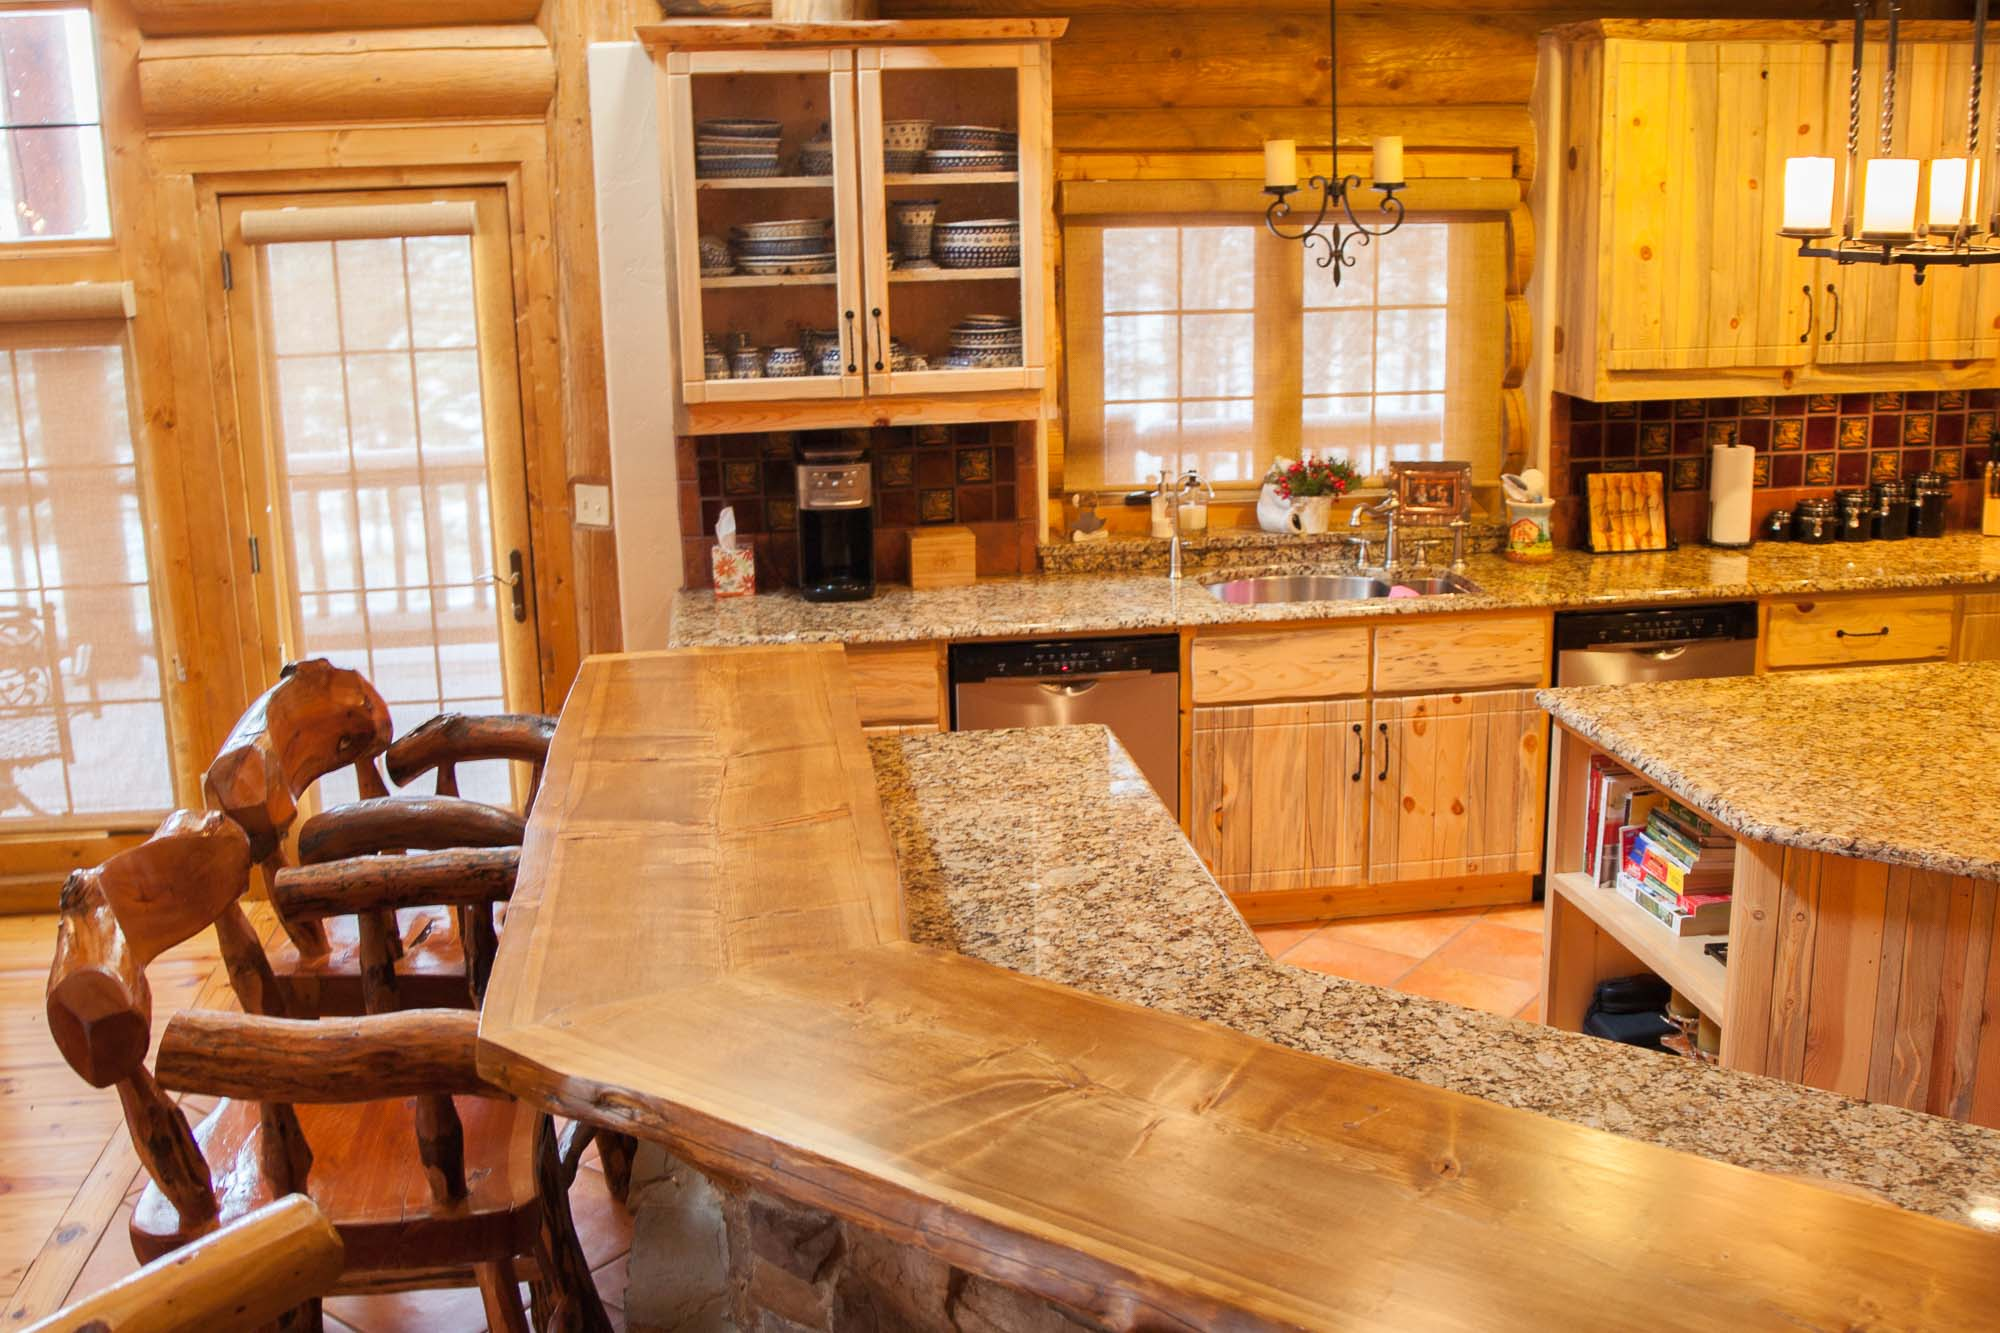 Granite Counter Tops. Custom designed & built log home kitchen in Northern New Mexico by Mammoth Mill & Construction